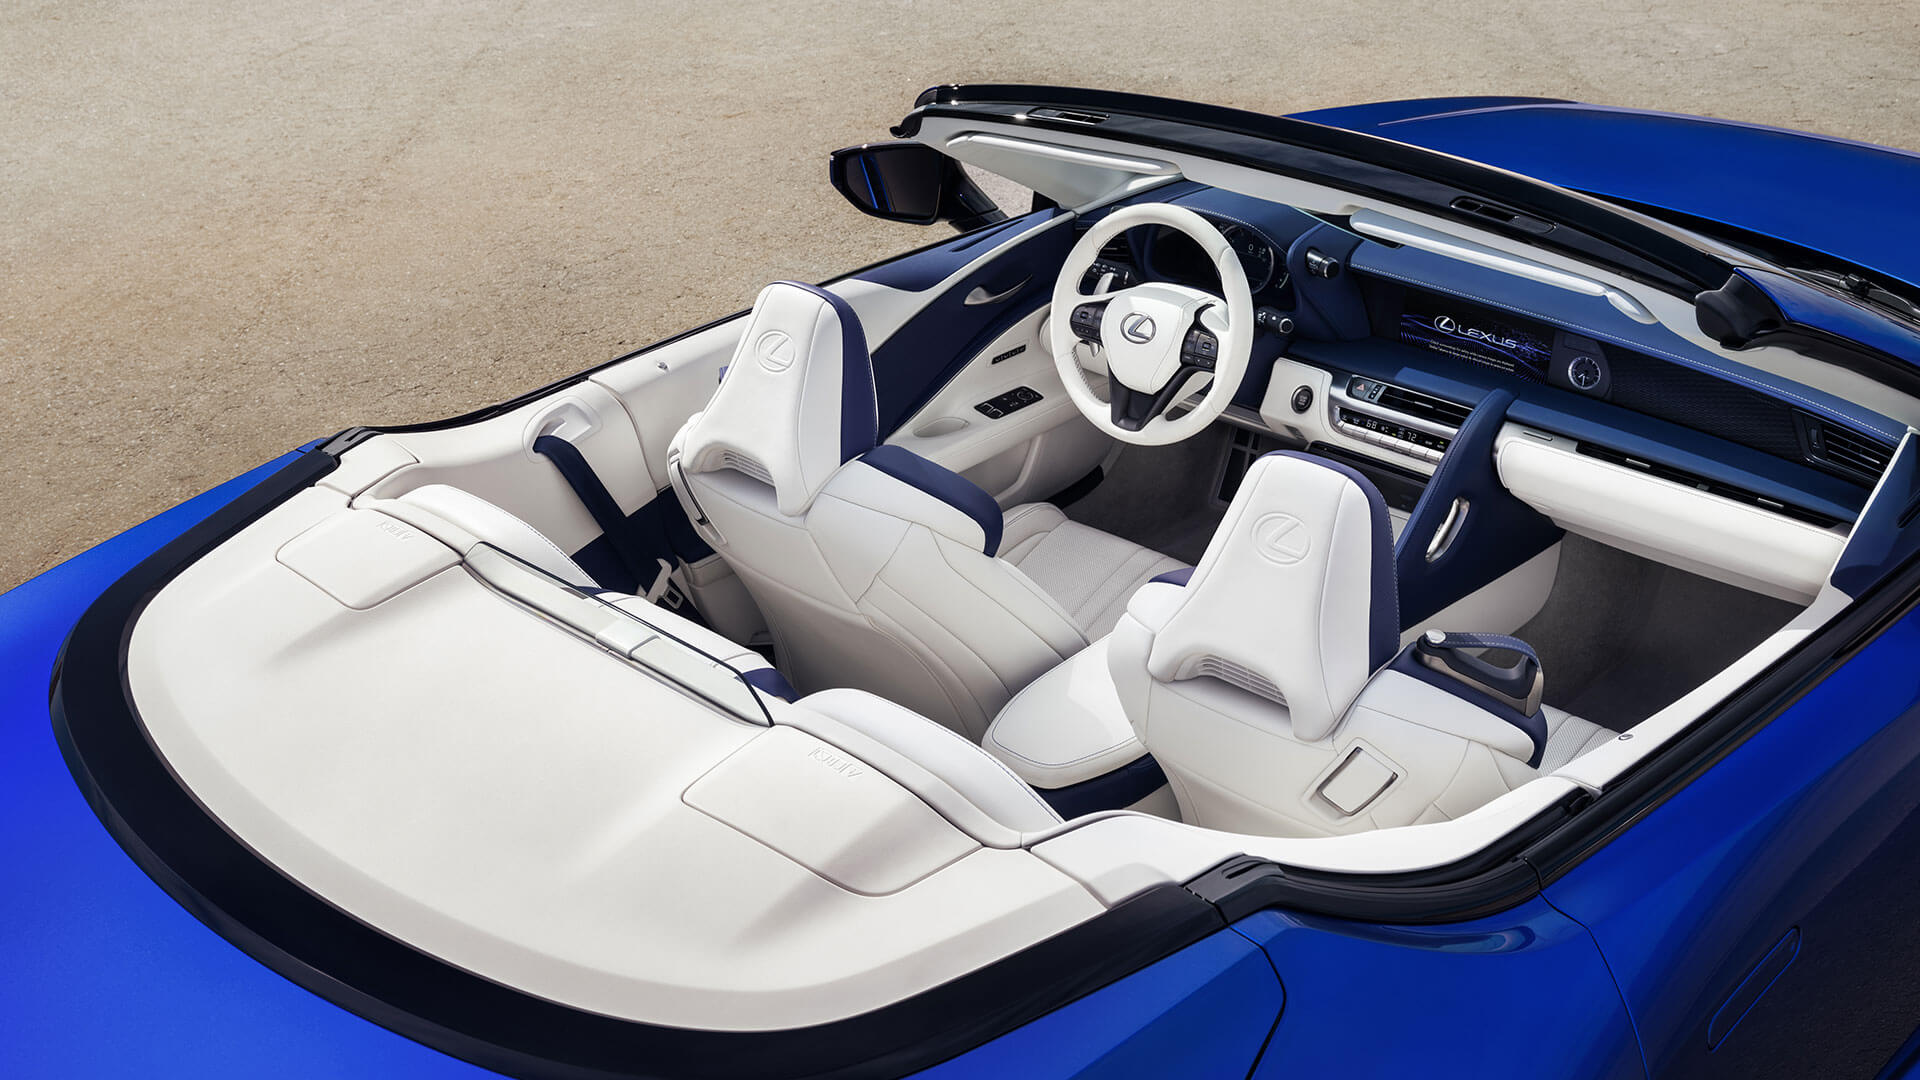 2020 lc convertible gallery 14